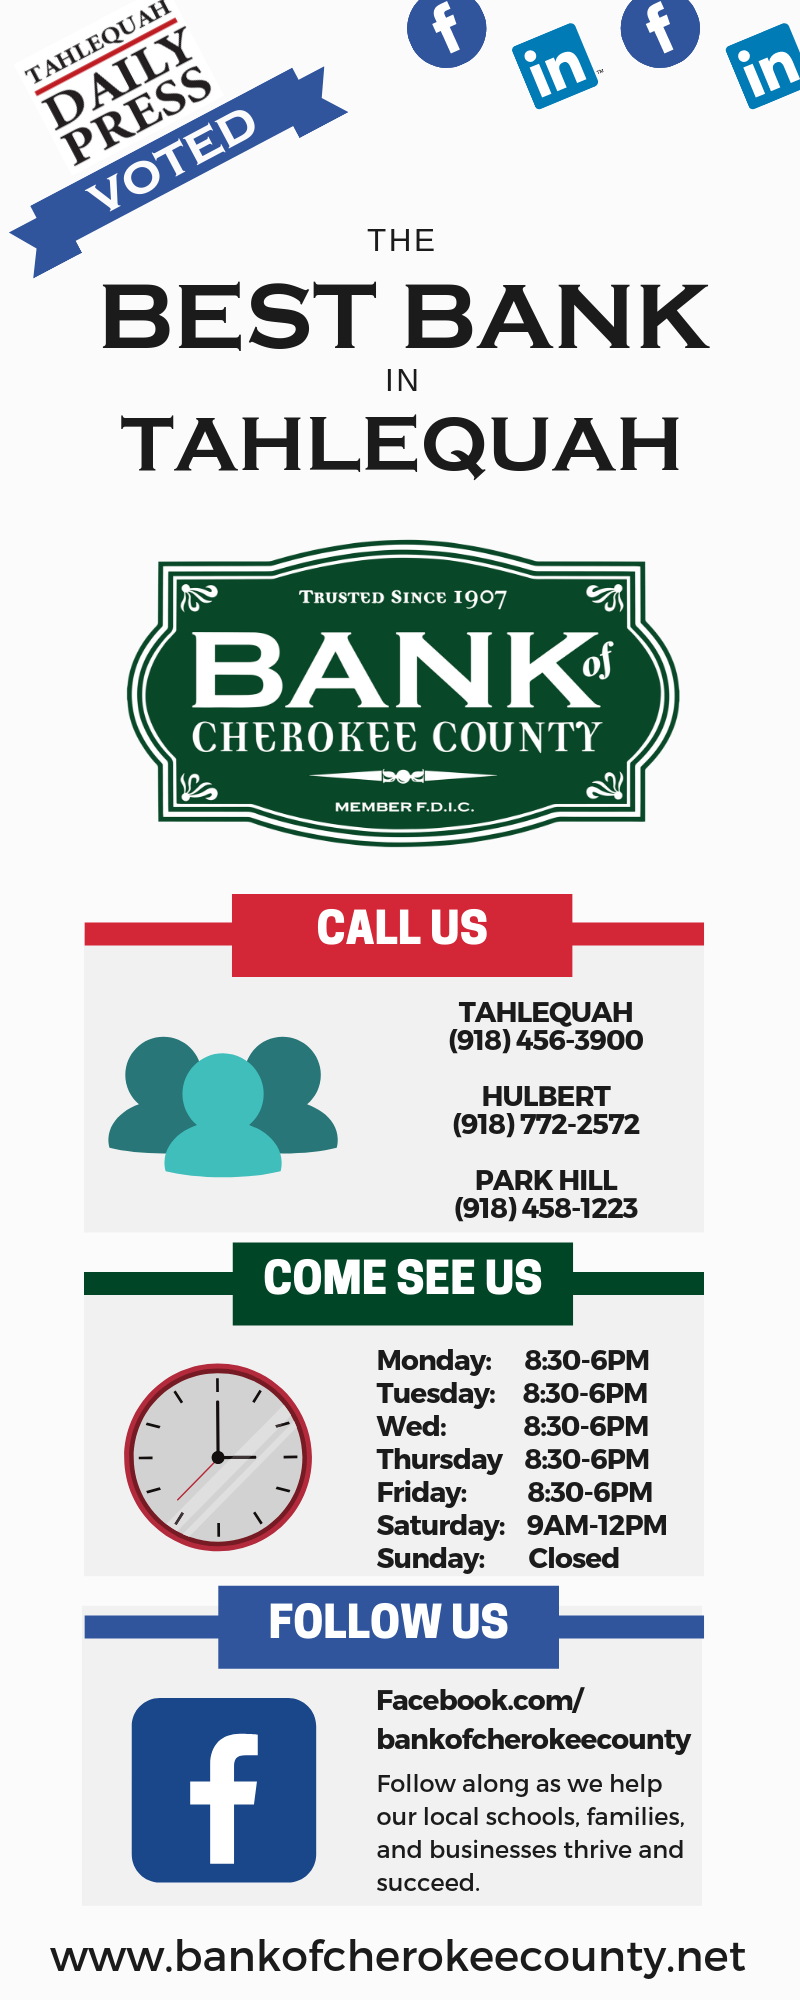 Best Banks in Tahlequah Infographic. Bank Of Cherokee County recently voted the best bank in Tahlequah by the Tahlequah Daily Press.